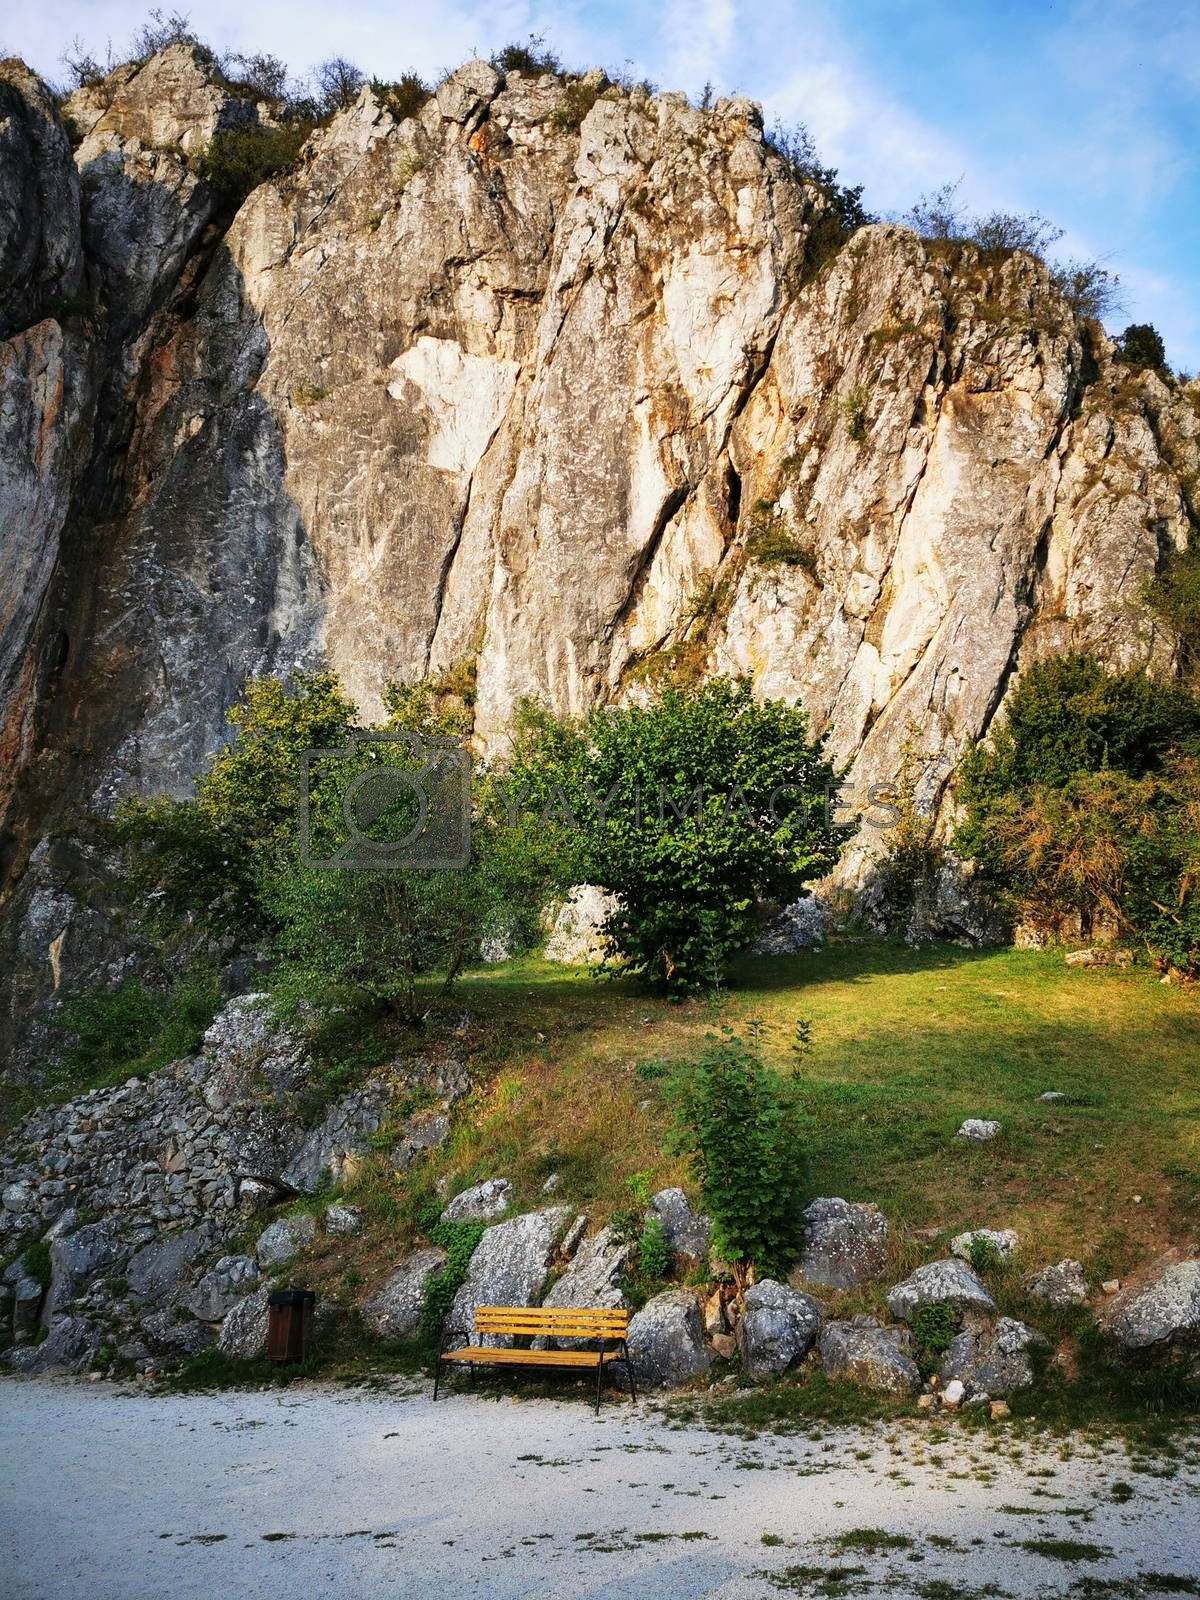 Royalty free image of A rocky island in the middle of a large rock by balage941